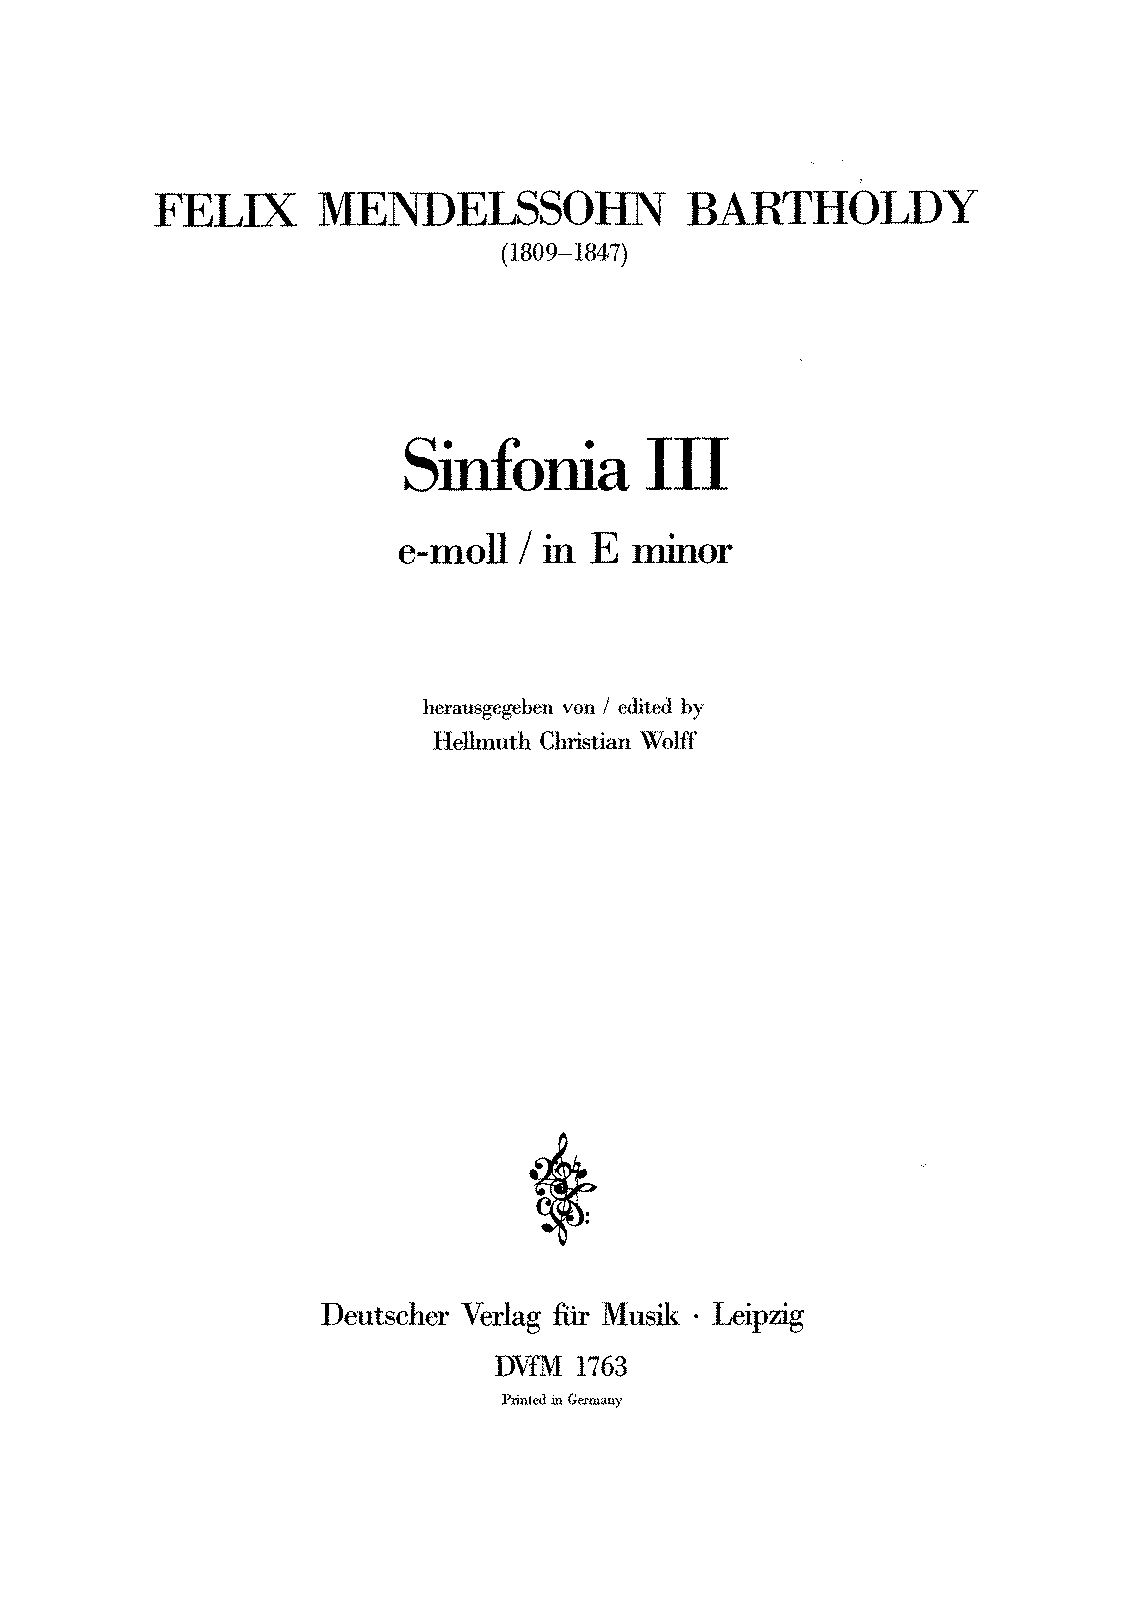 PMLP207273-Mendelssohn, Felix - Sinfonia for String no. 03 in E minor MWV N 3.pdf